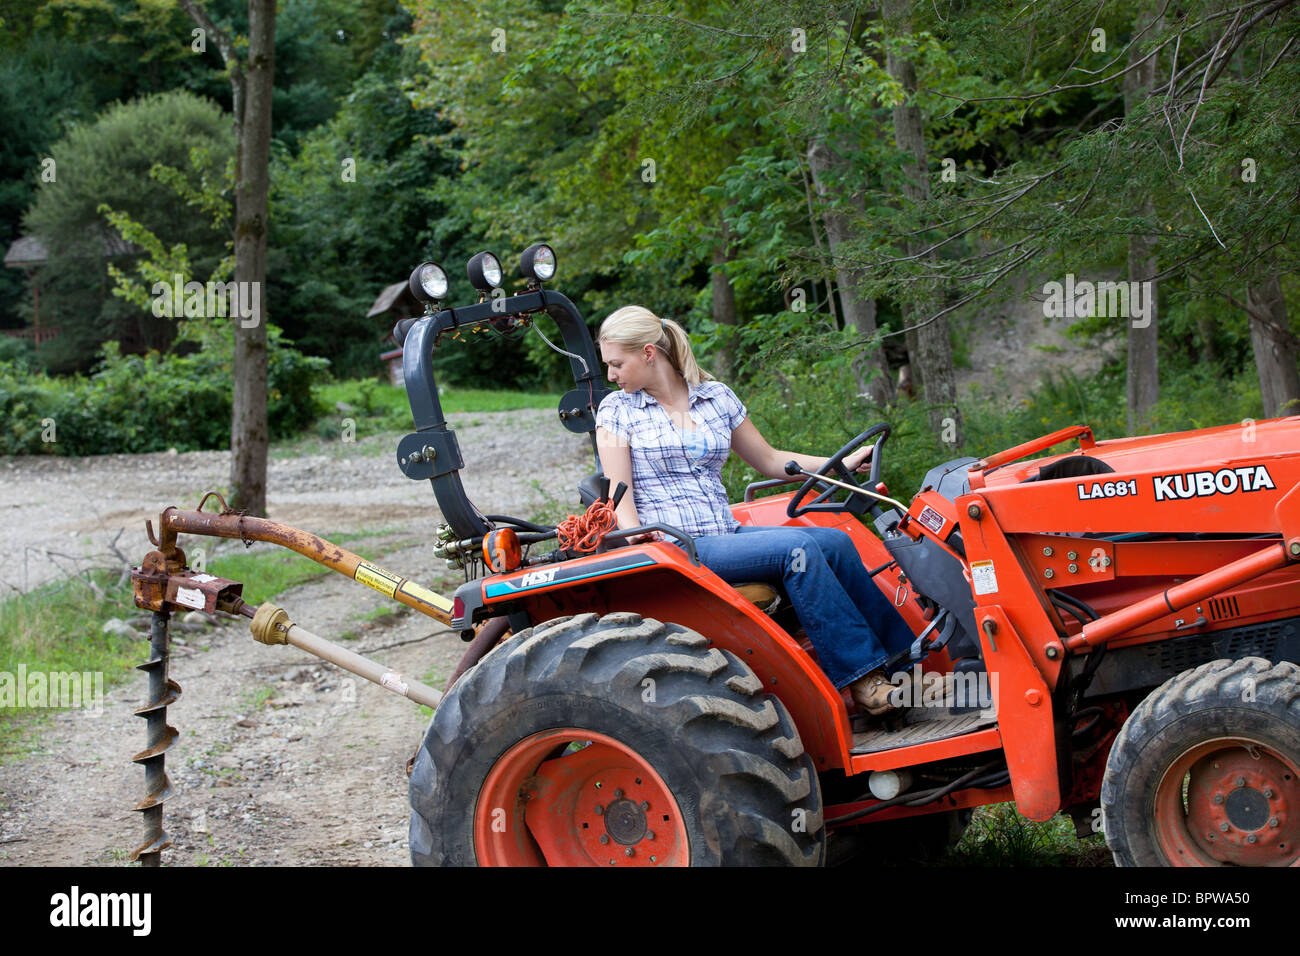 Kubota tractors for sale in kentucky - Young Blond Woman Driving Kubota Tractor With Post Hole Digger Attachment Working On Farm Stock